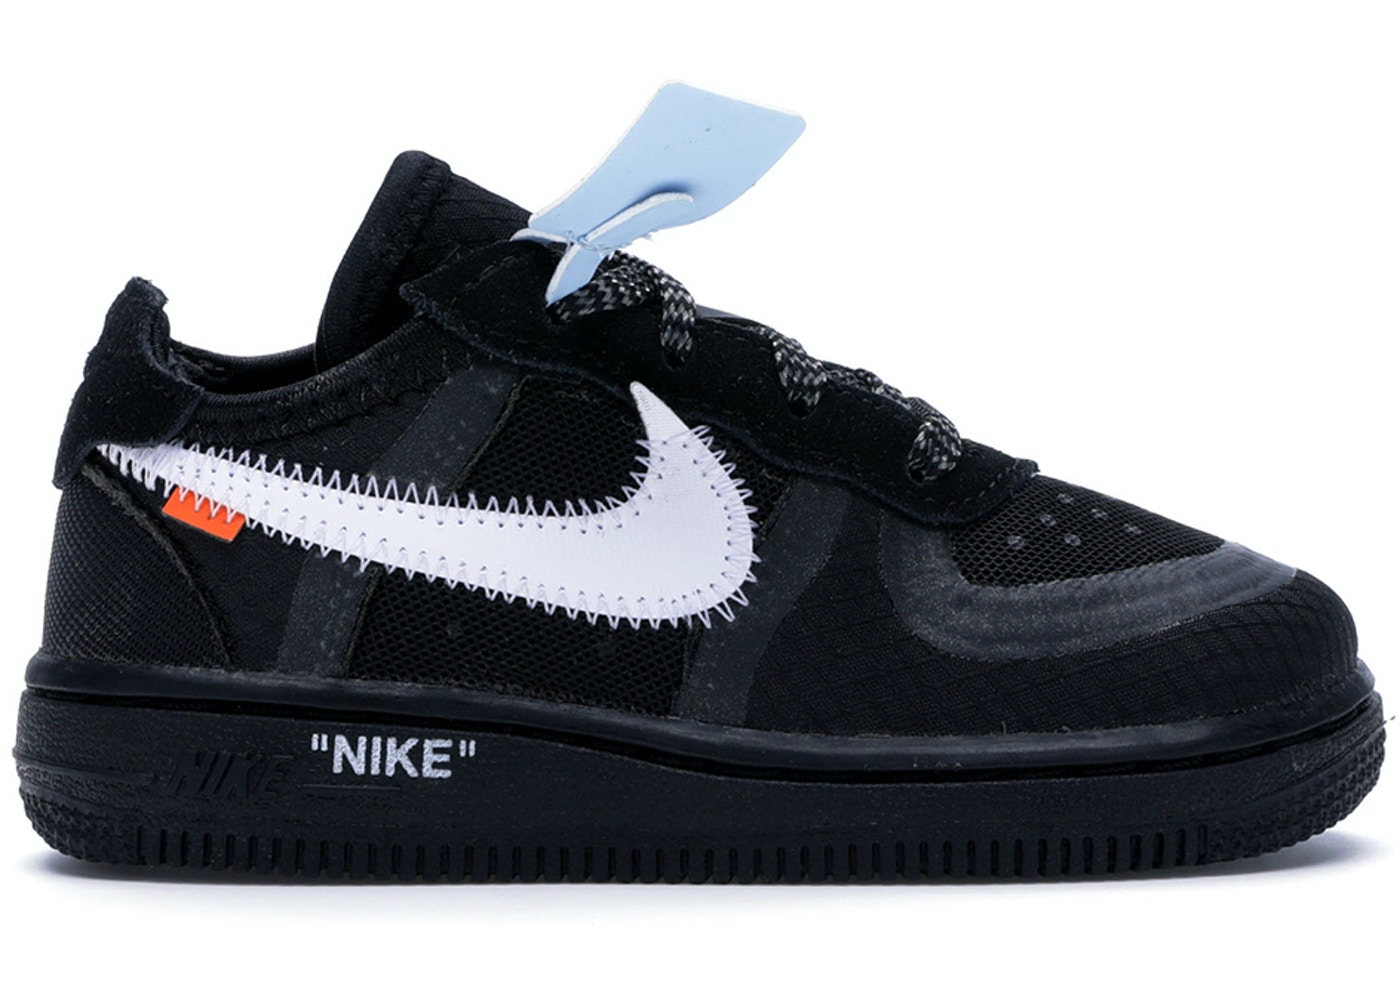 check out 69712 46914 Air Force 1 Low Off-White Black White (TD) - BV0853-001